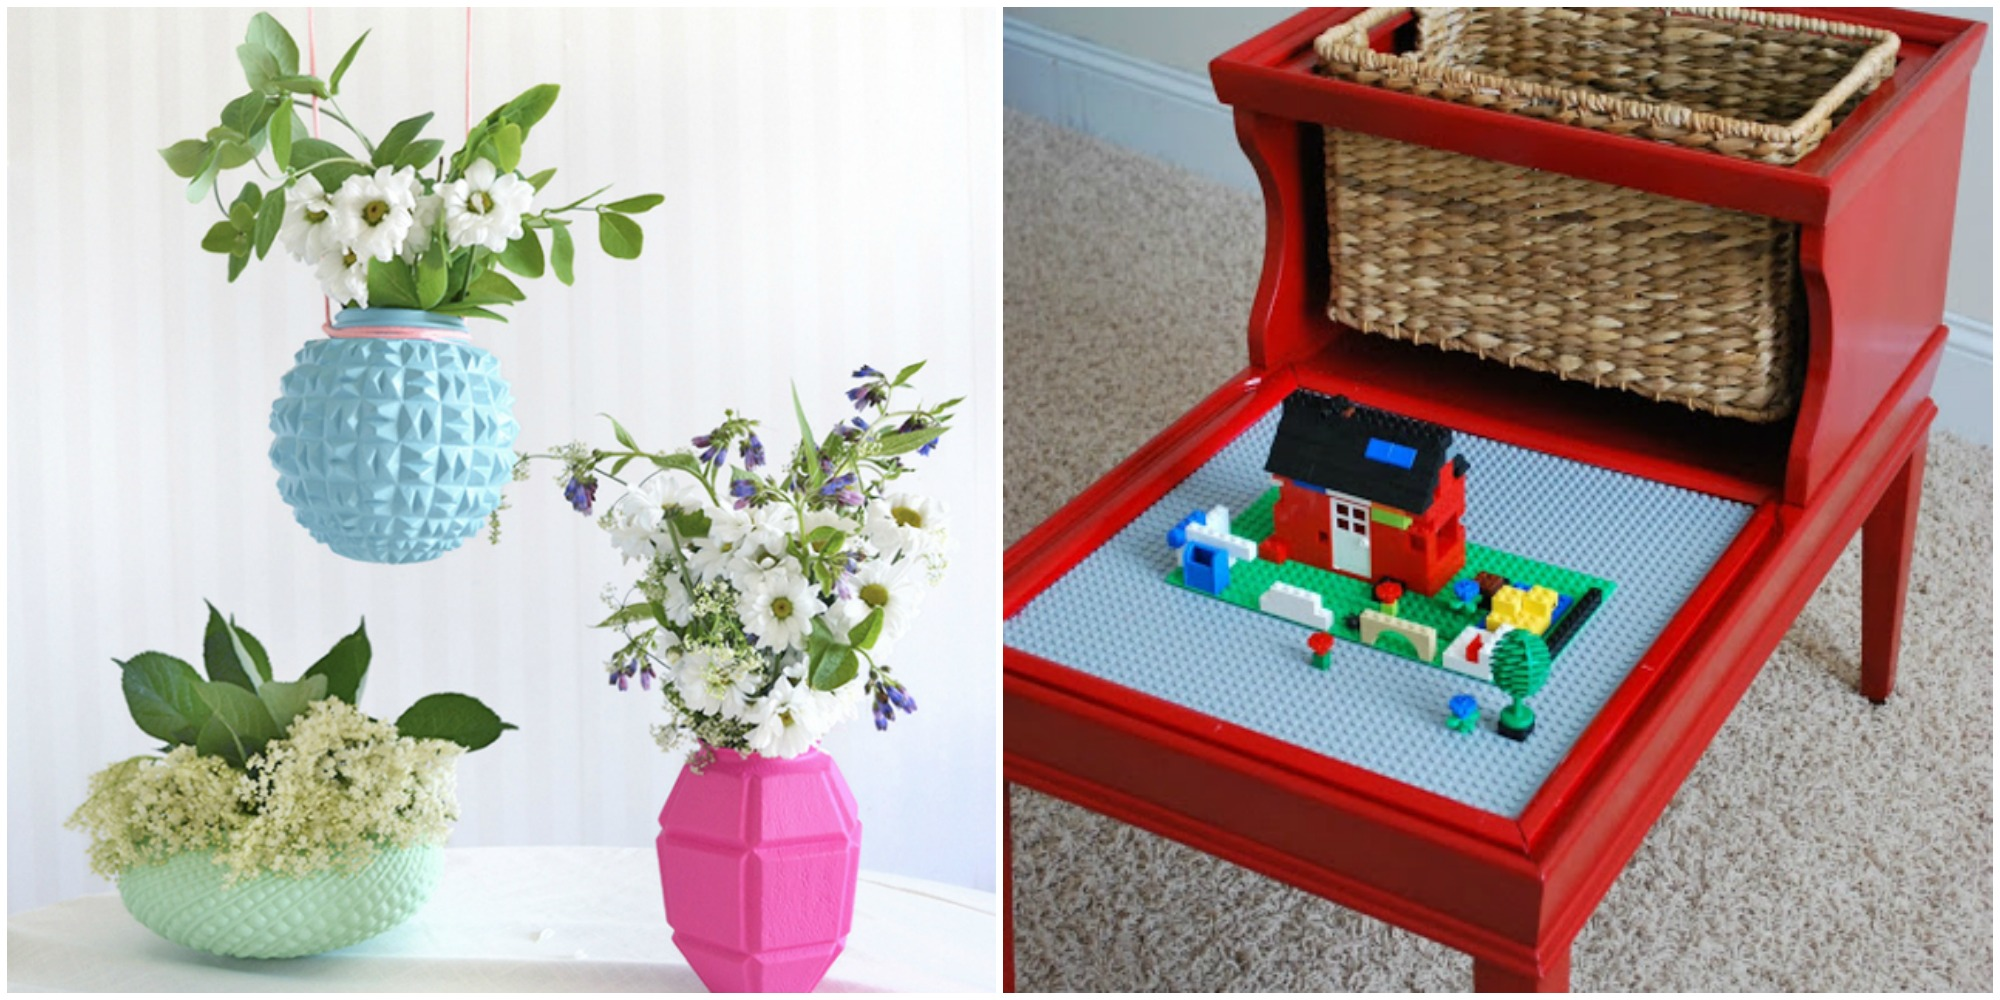 Upcycled Home Projects